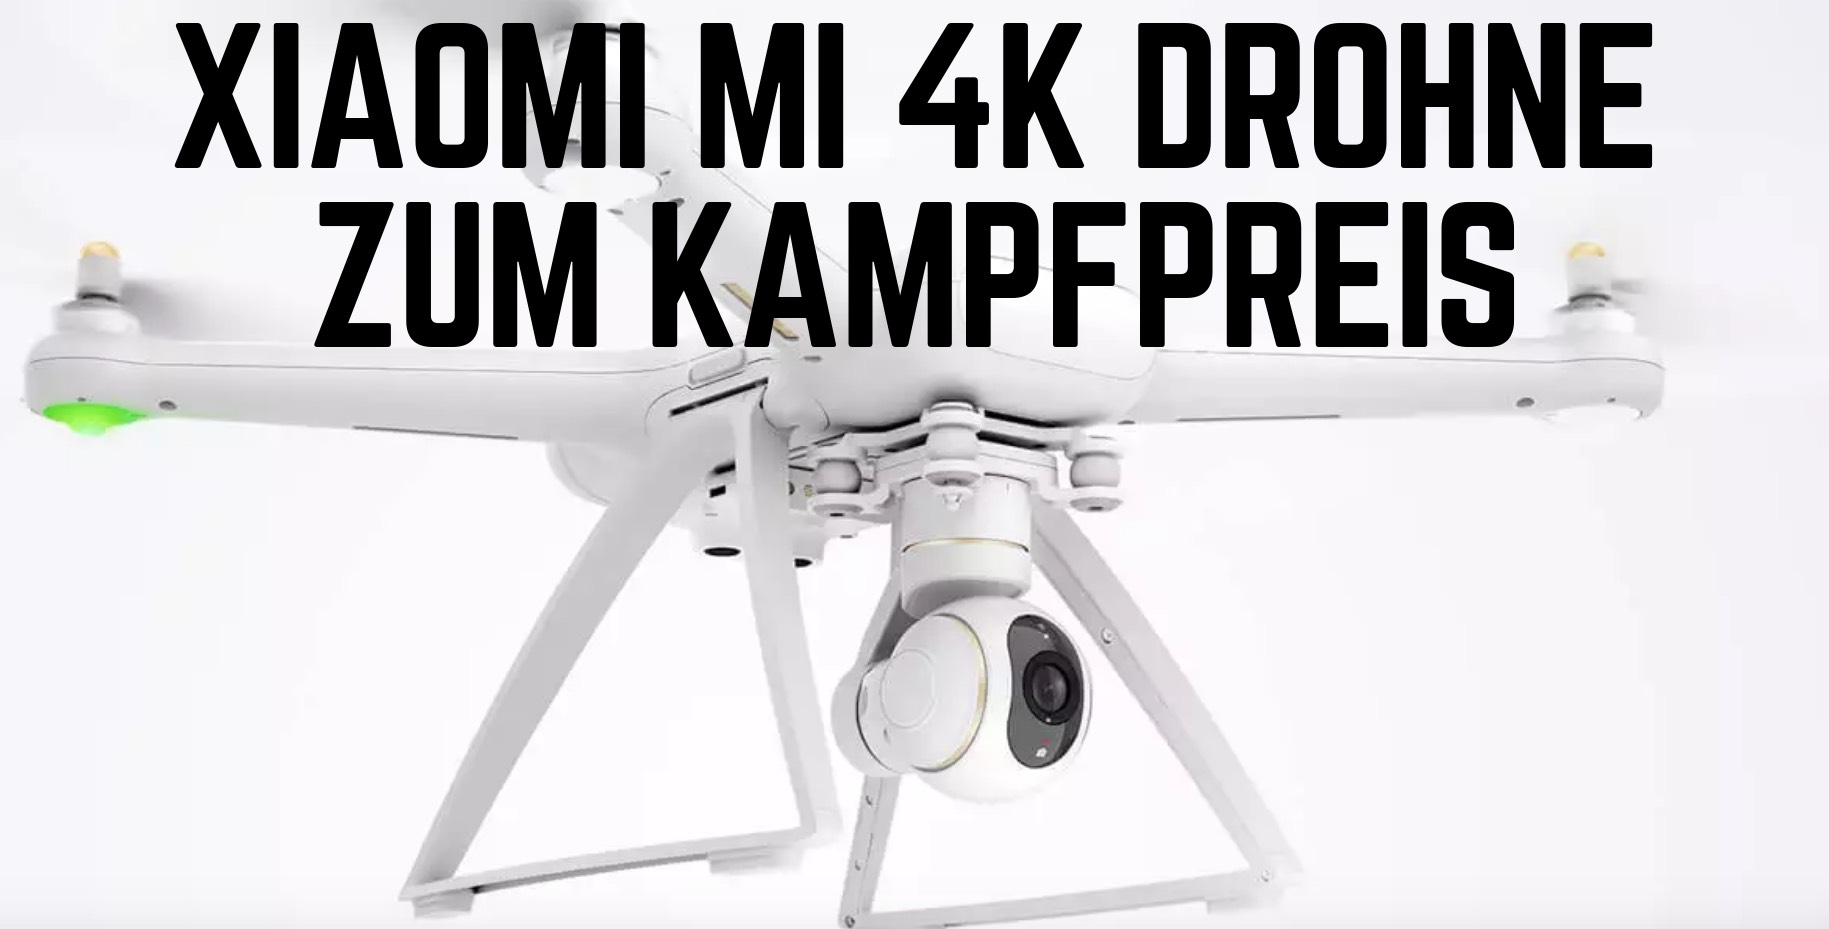 xiaomi mi 4k drohne f r anf nger lost in drones. Black Bedroom Furniture Sets. Home Design Ideas